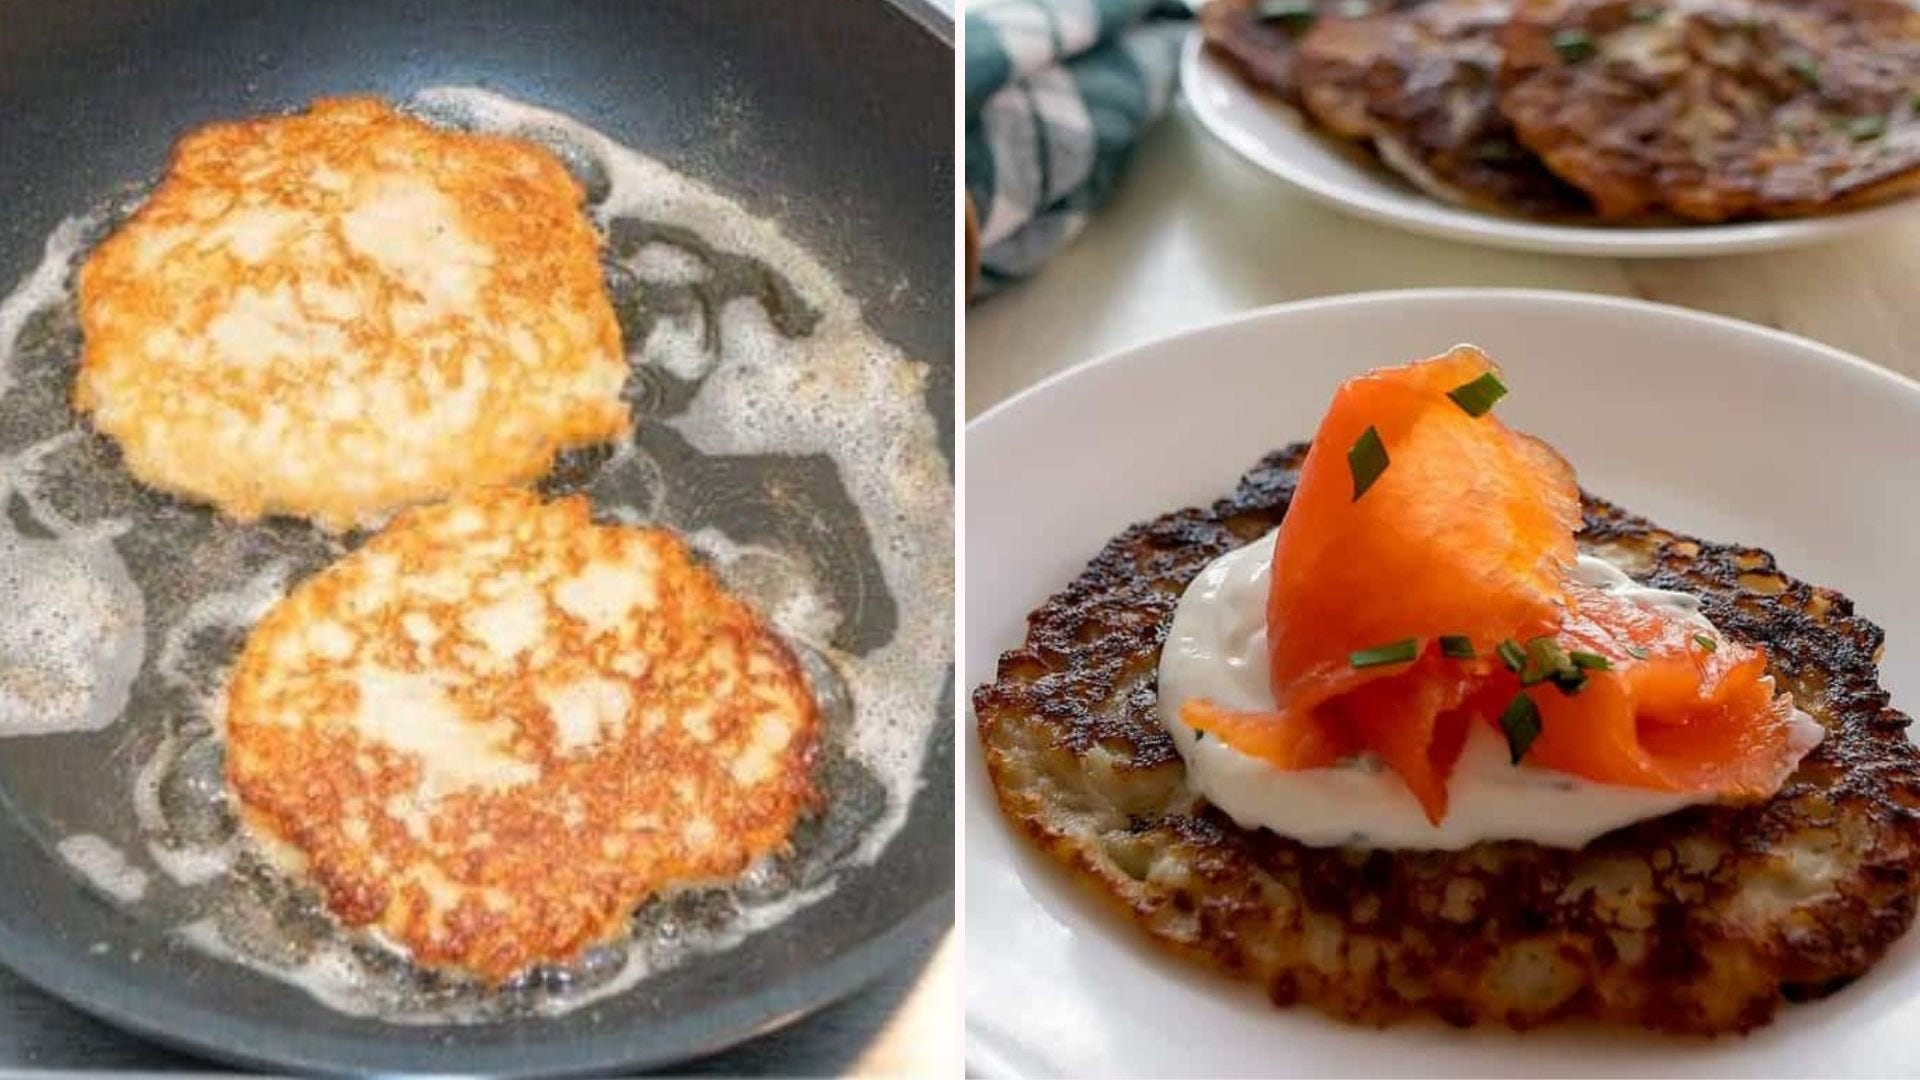 Irish Boxty frying in a skillet with oil, and a plated Boxty with sour cream sauce and smoked salmon on top.